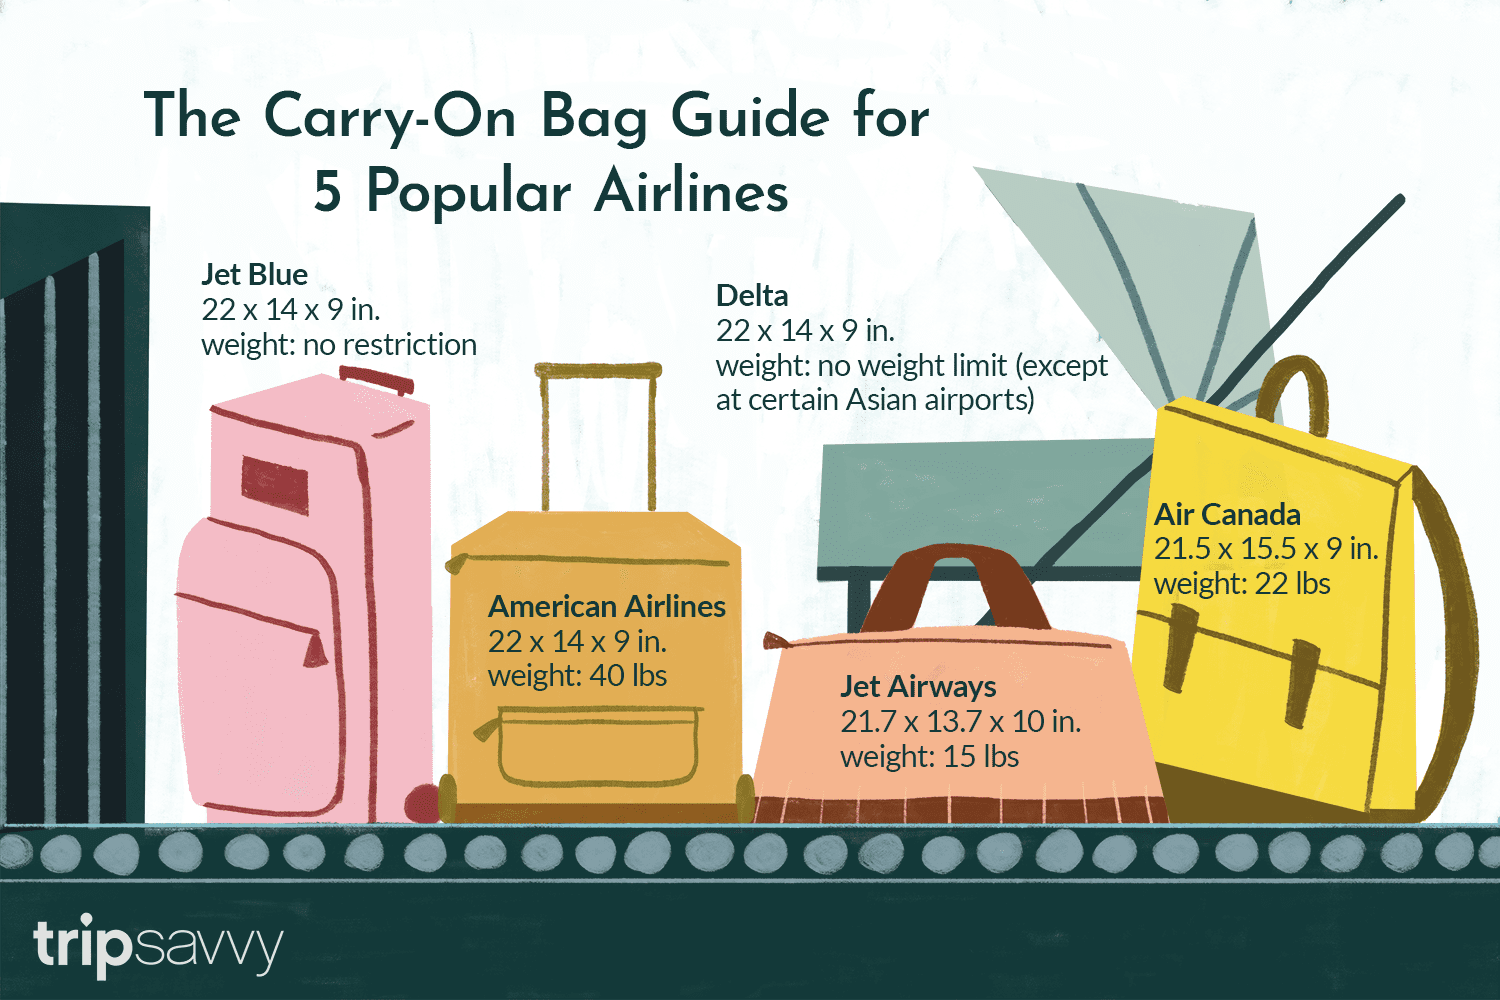 c7a29d7acf Carry-On Bags Size and Weight Limits and Allowances